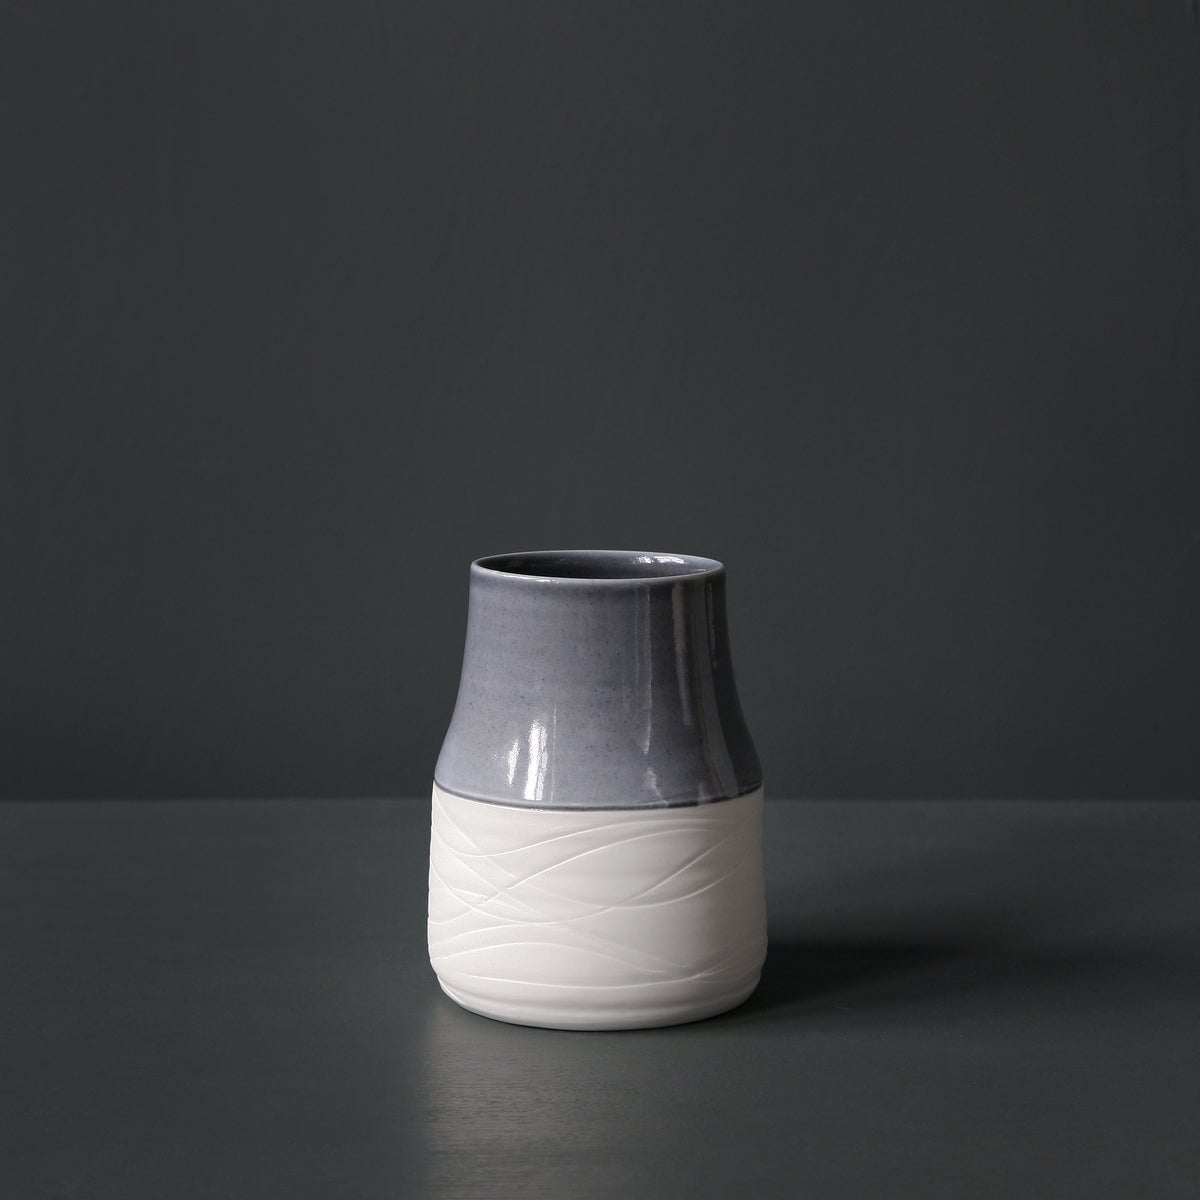 Image of Vase #2 by Louisa Taylor.